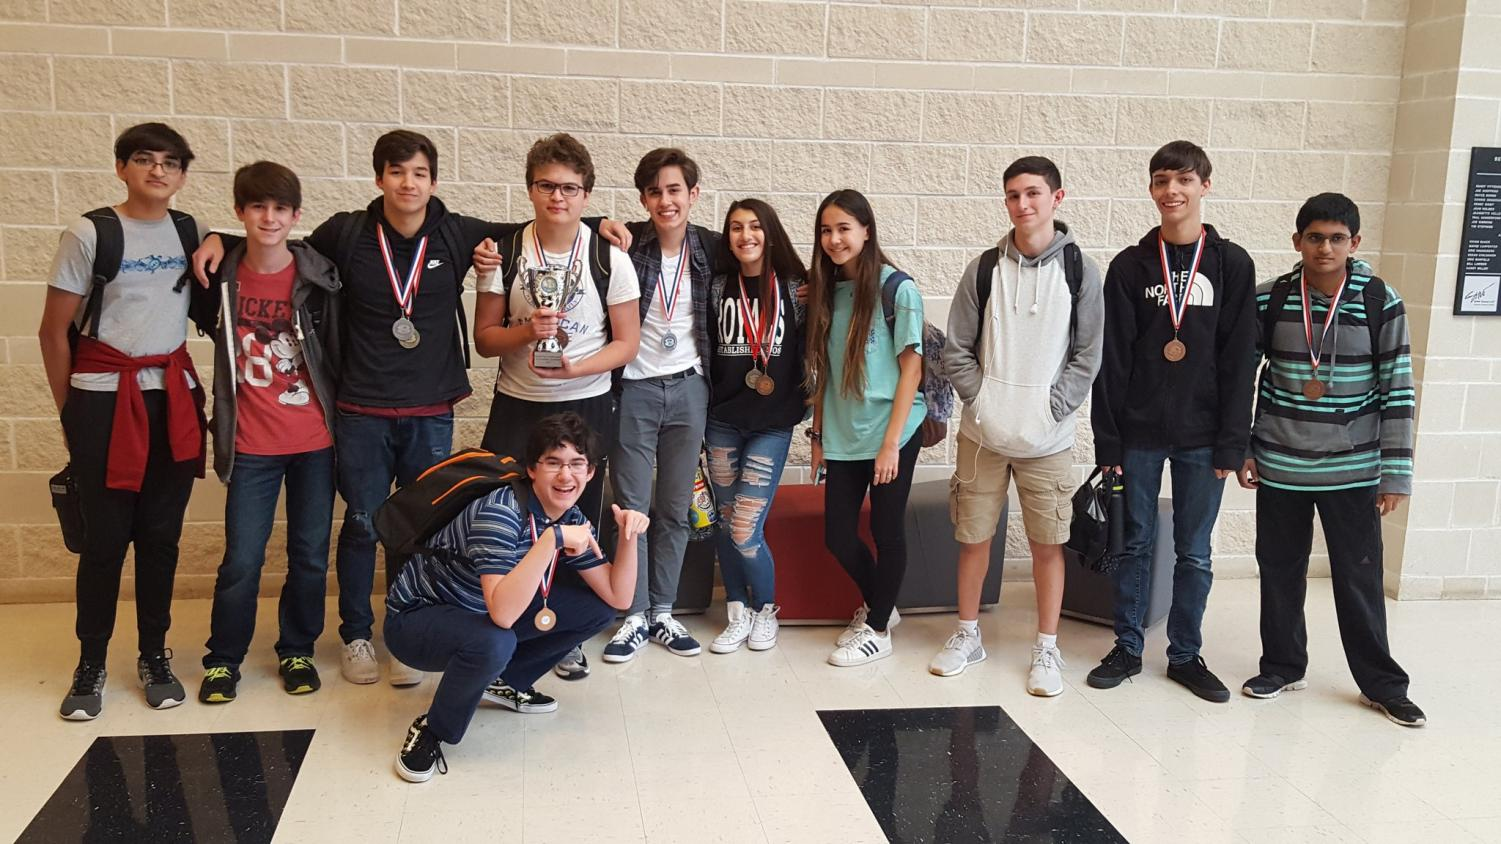 At their first practice meet Oct. 20 at Belton HS, several UIL academic team members take a picture with the medals they won. Students earned enough points in all events combined to bring home the Sweepstakes award.